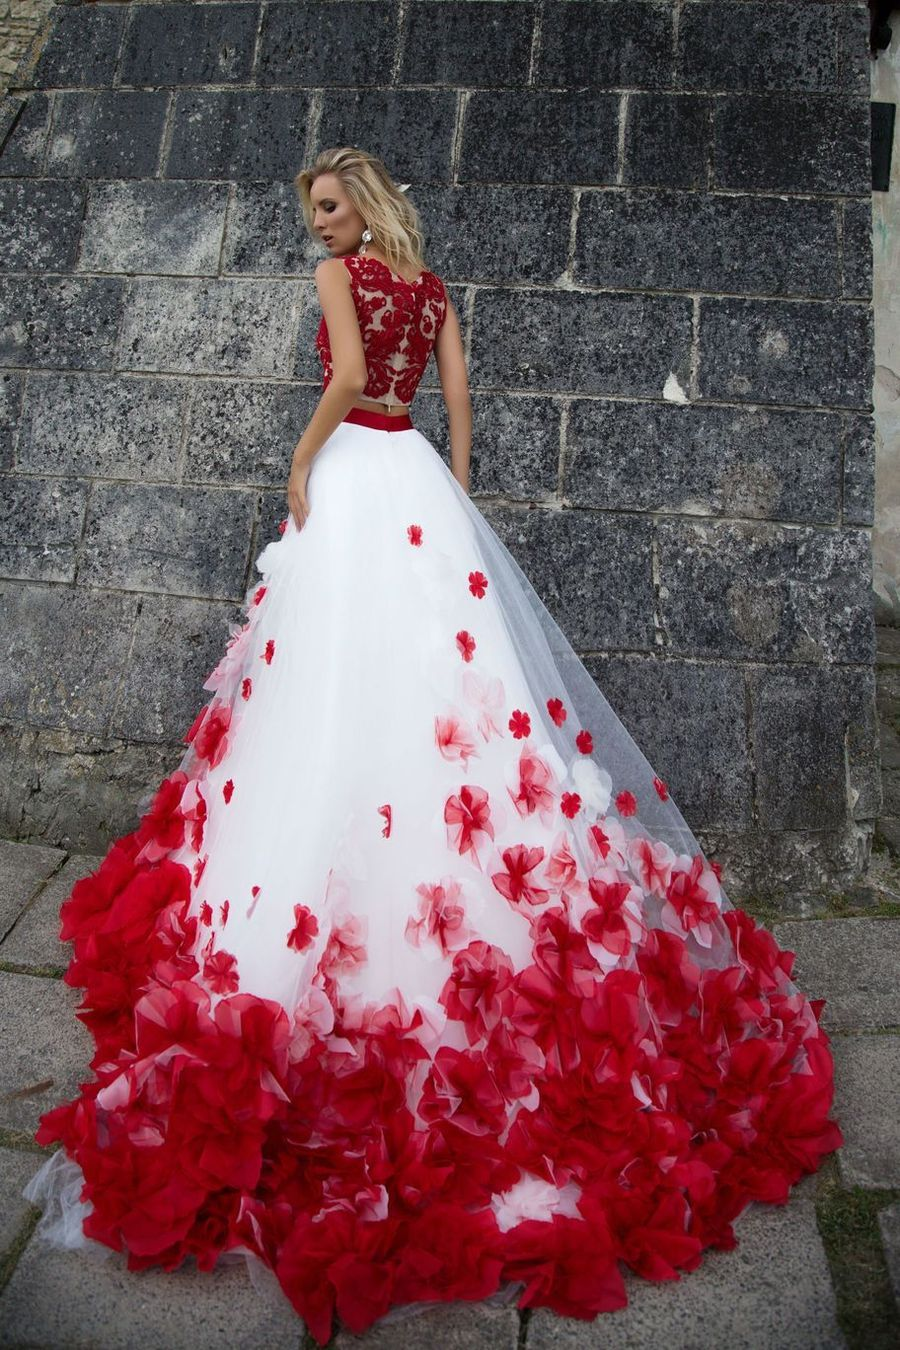 Two Pieces Wedding Dresses White And Red Bridal Gown Pd4558709 Two Piece Wedding Dress Red Wedding Dresses Gowns [ 1350 x 900 Pixel ]